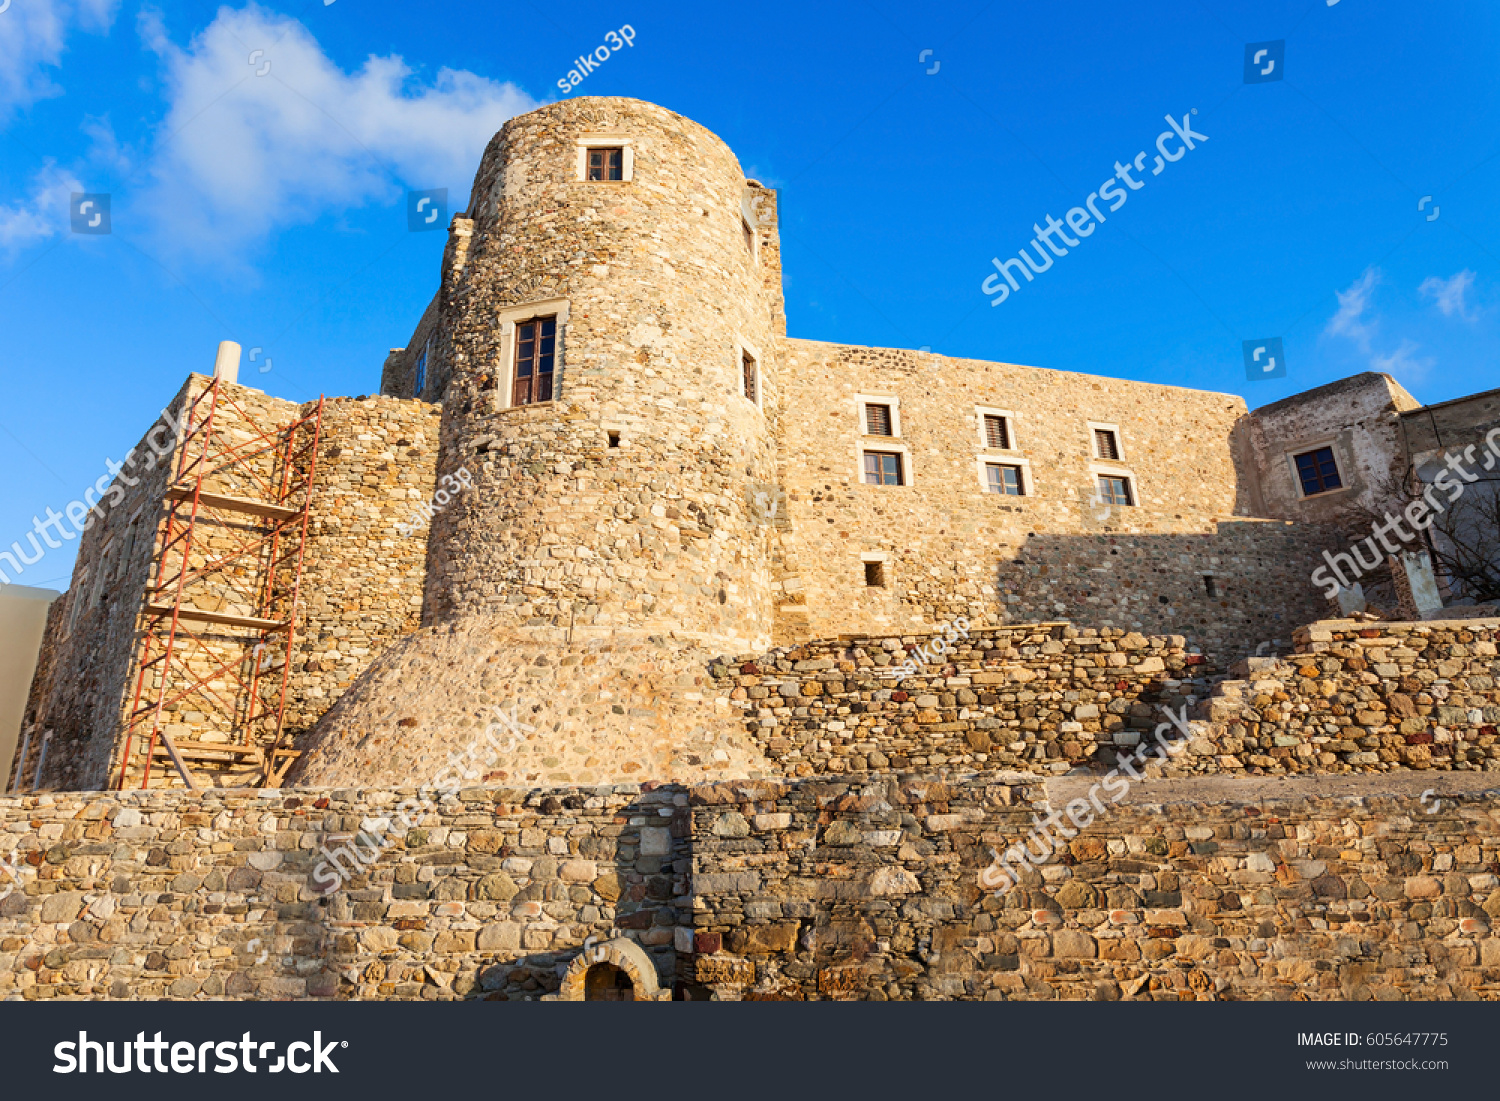 Naxos Kastro Old Town Tower Walls Stock Photo 605647775 ...